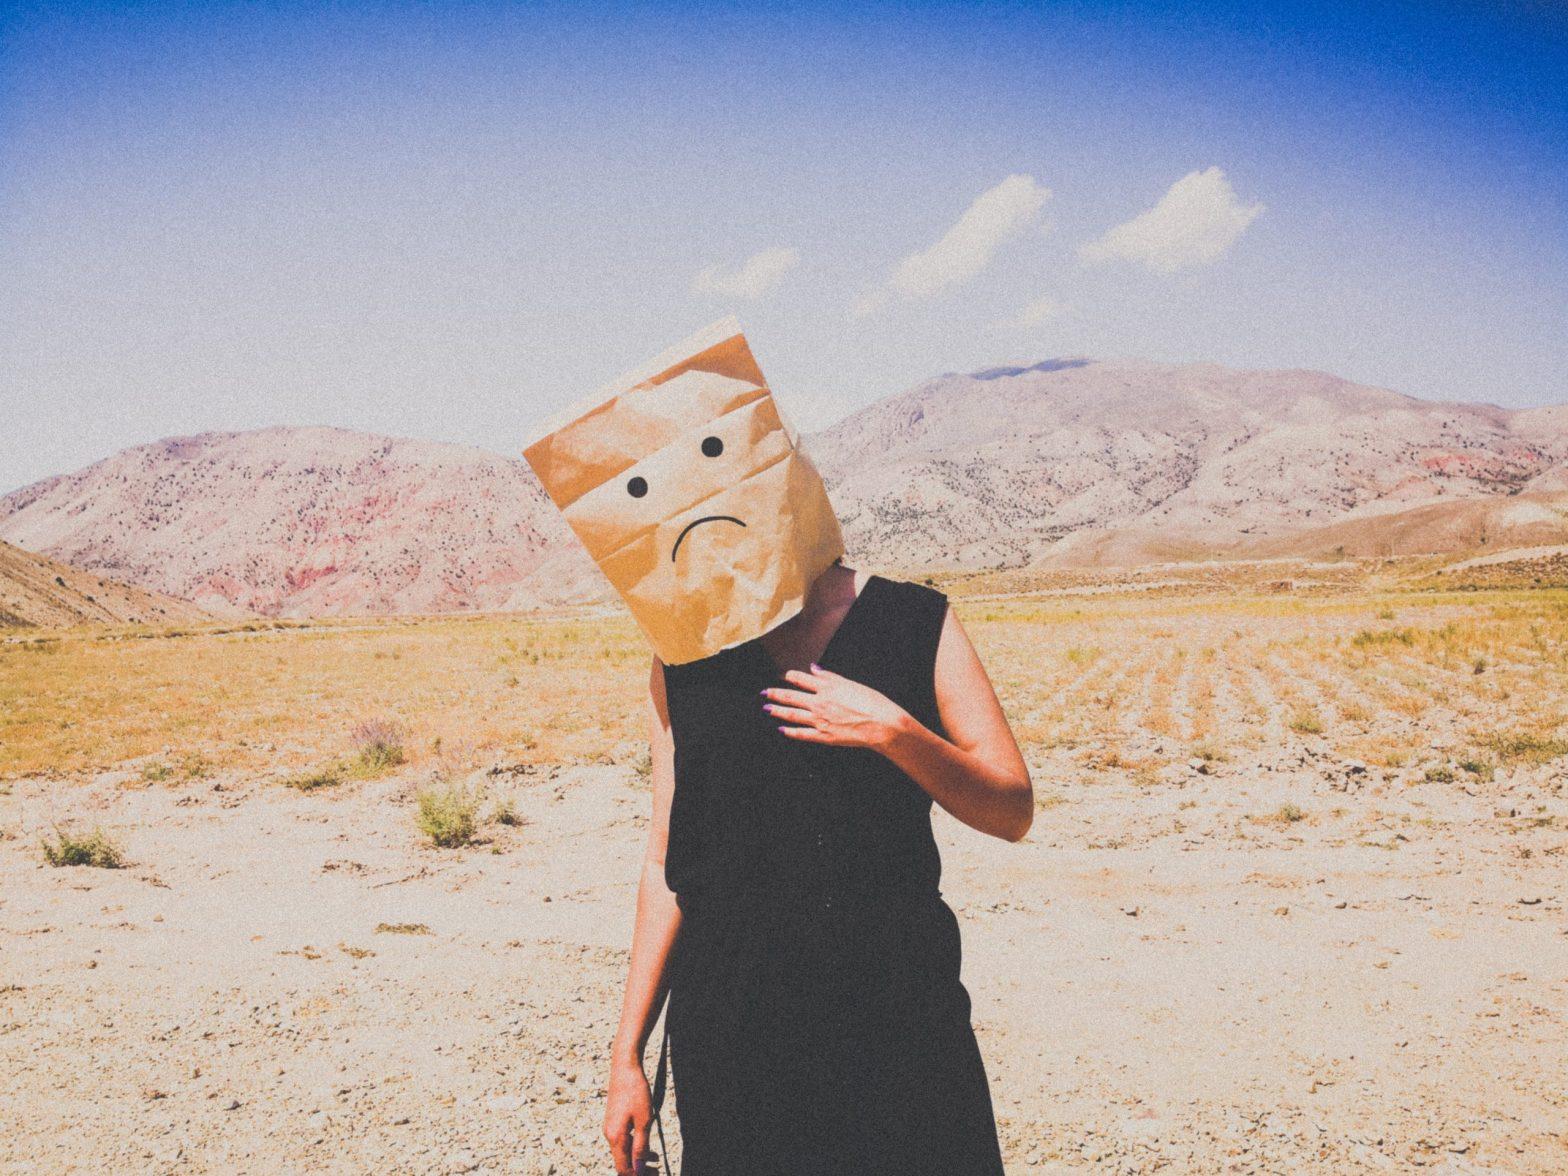 """Guy with a paper bag over his head with a frowny face on it, thinking, """"You make me feel sad."""""""